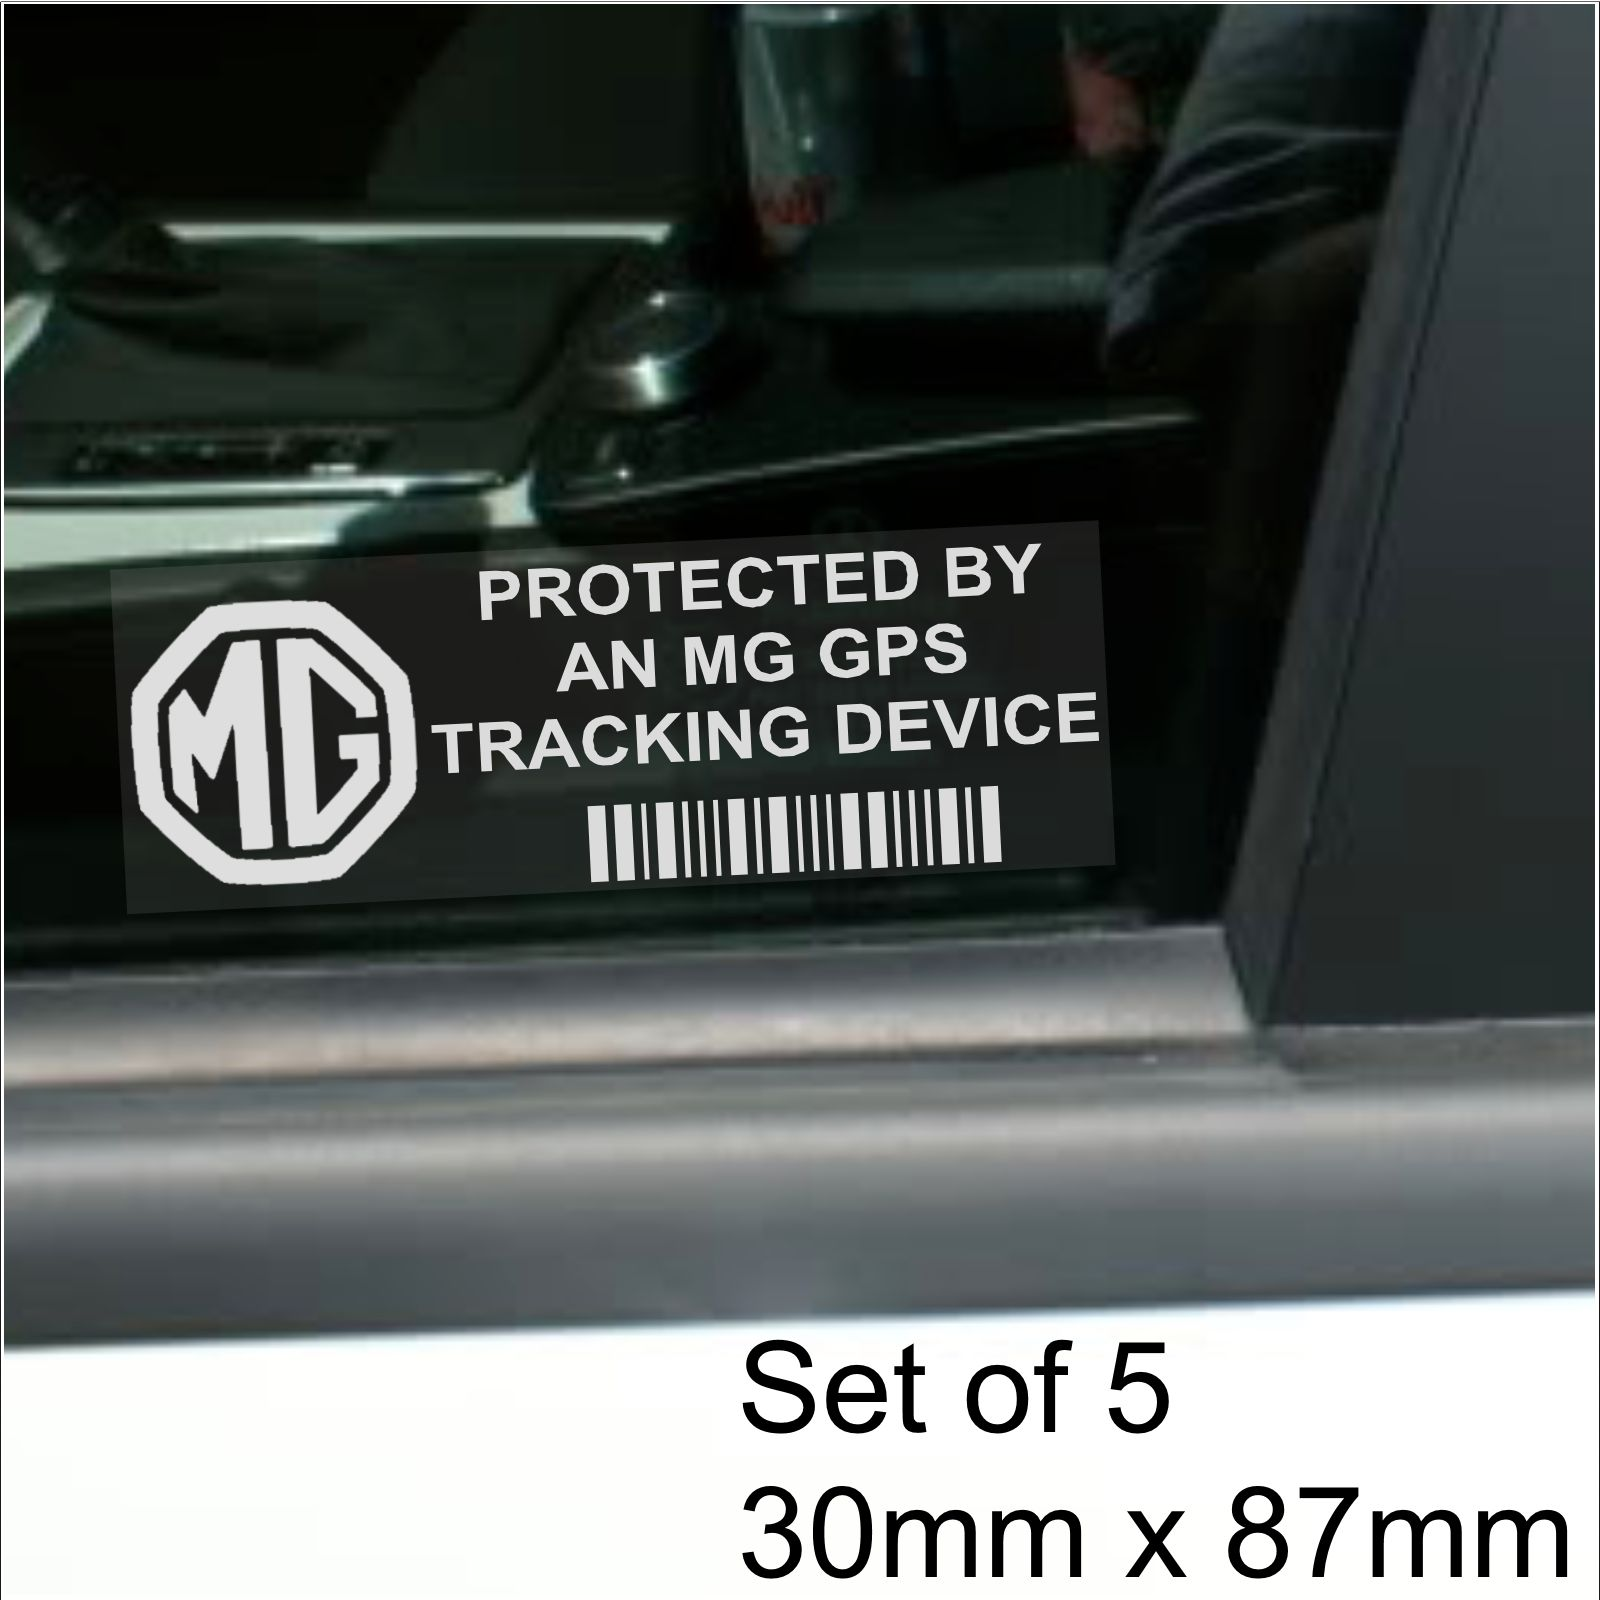 b7b5ef1418 5 x MG GPS Tracking Device Security WINDOW Stickers-87x30mm-Car Van ...